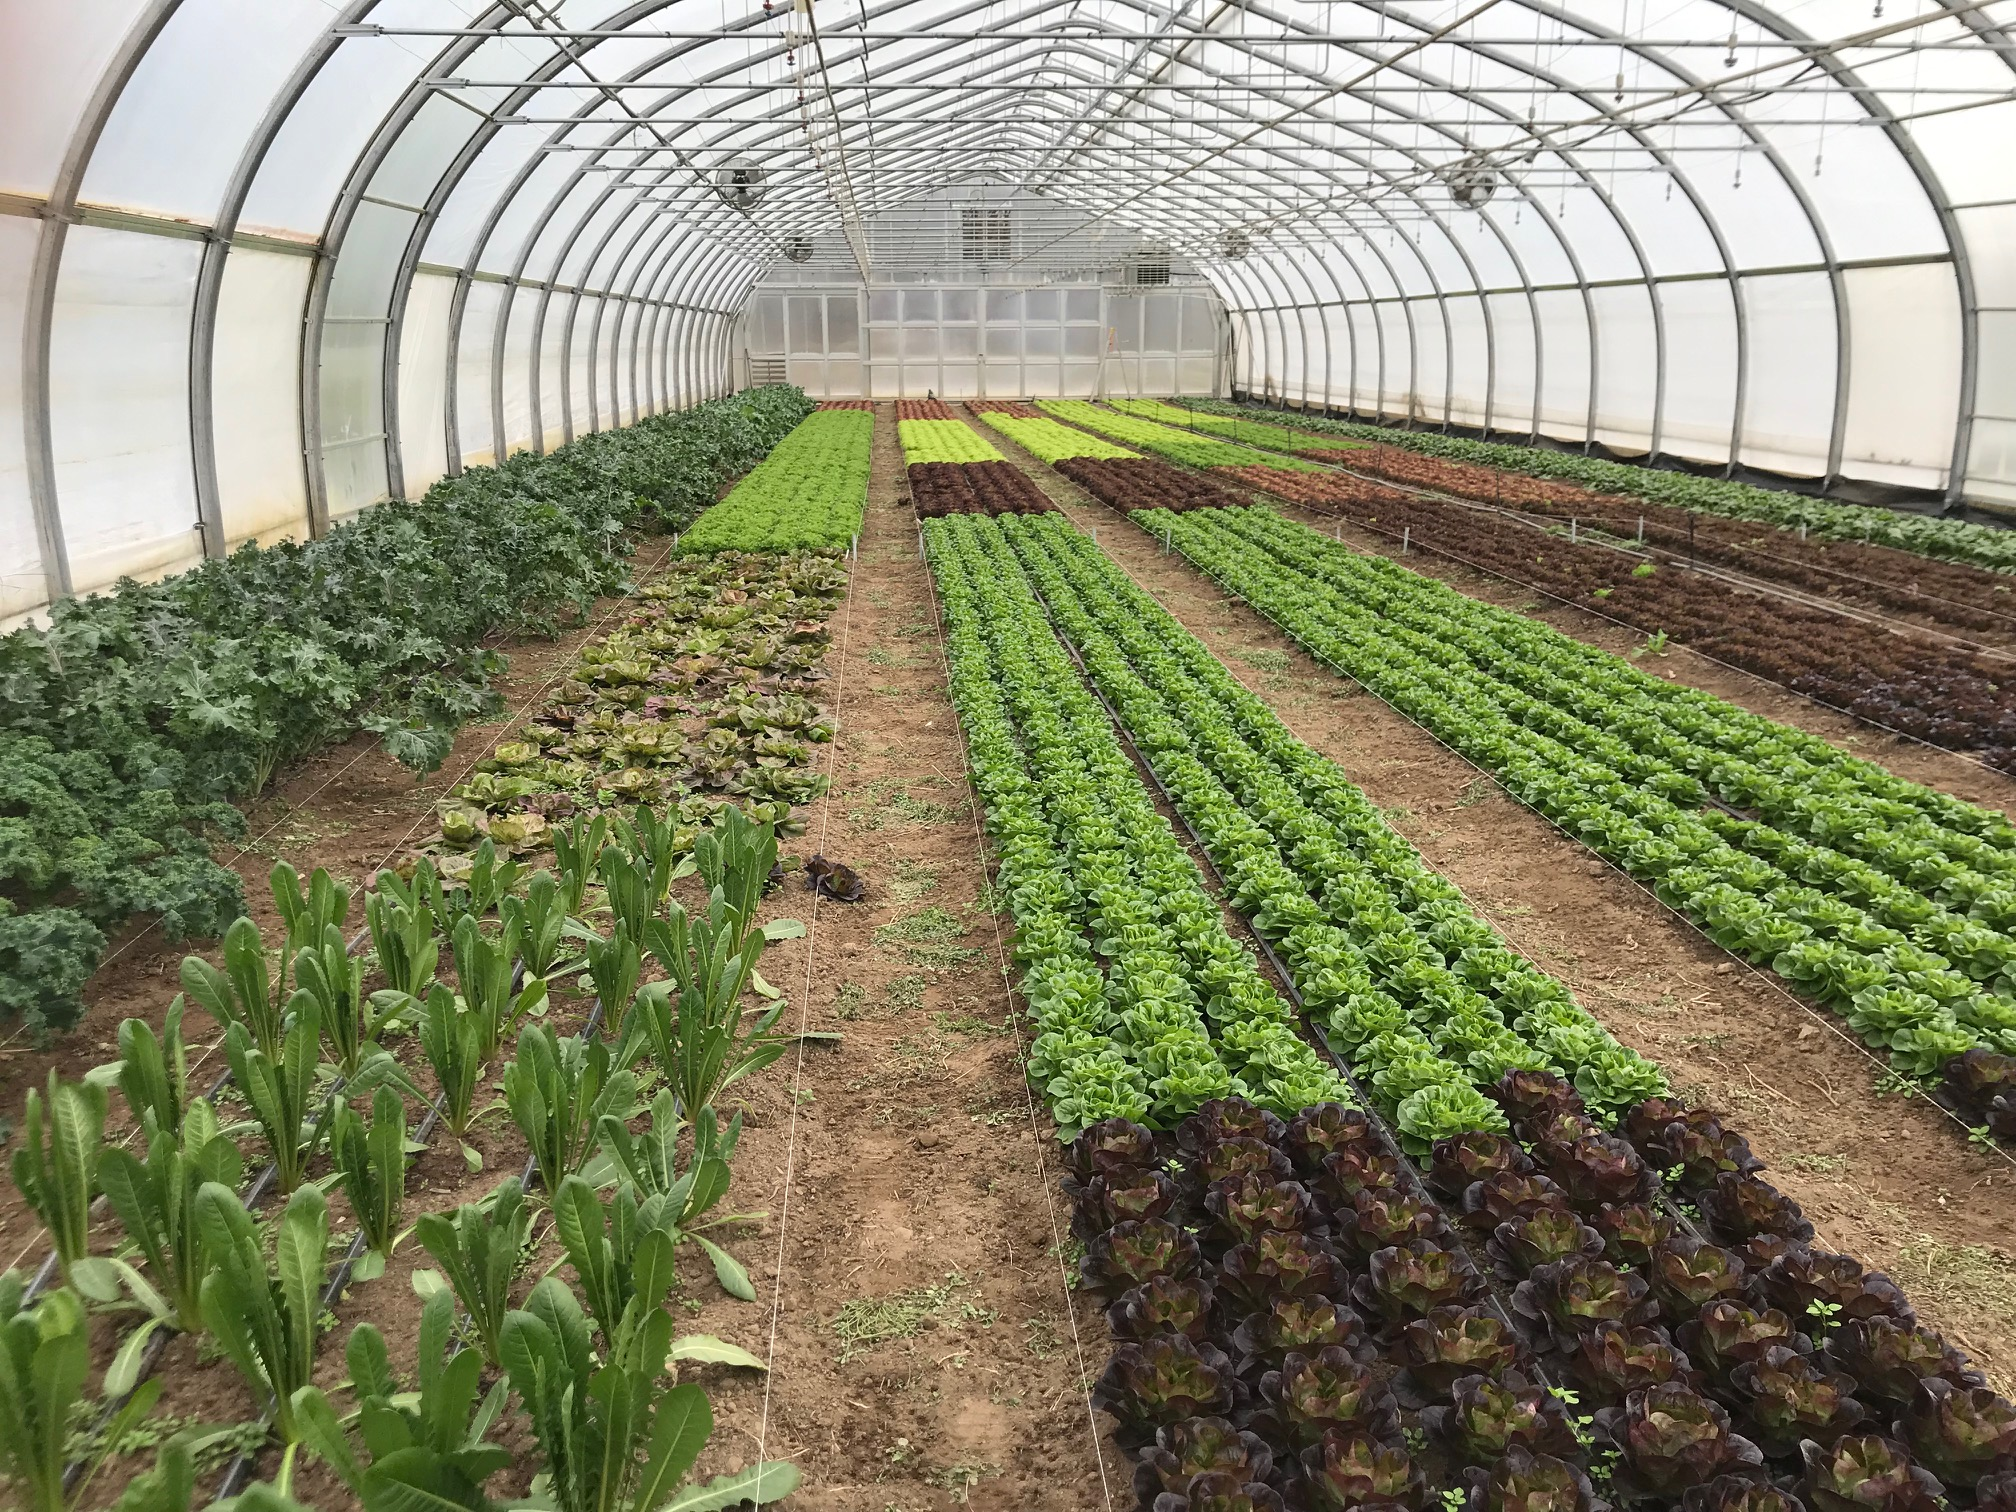 High tunnel greens are healthy and awaiting harvest